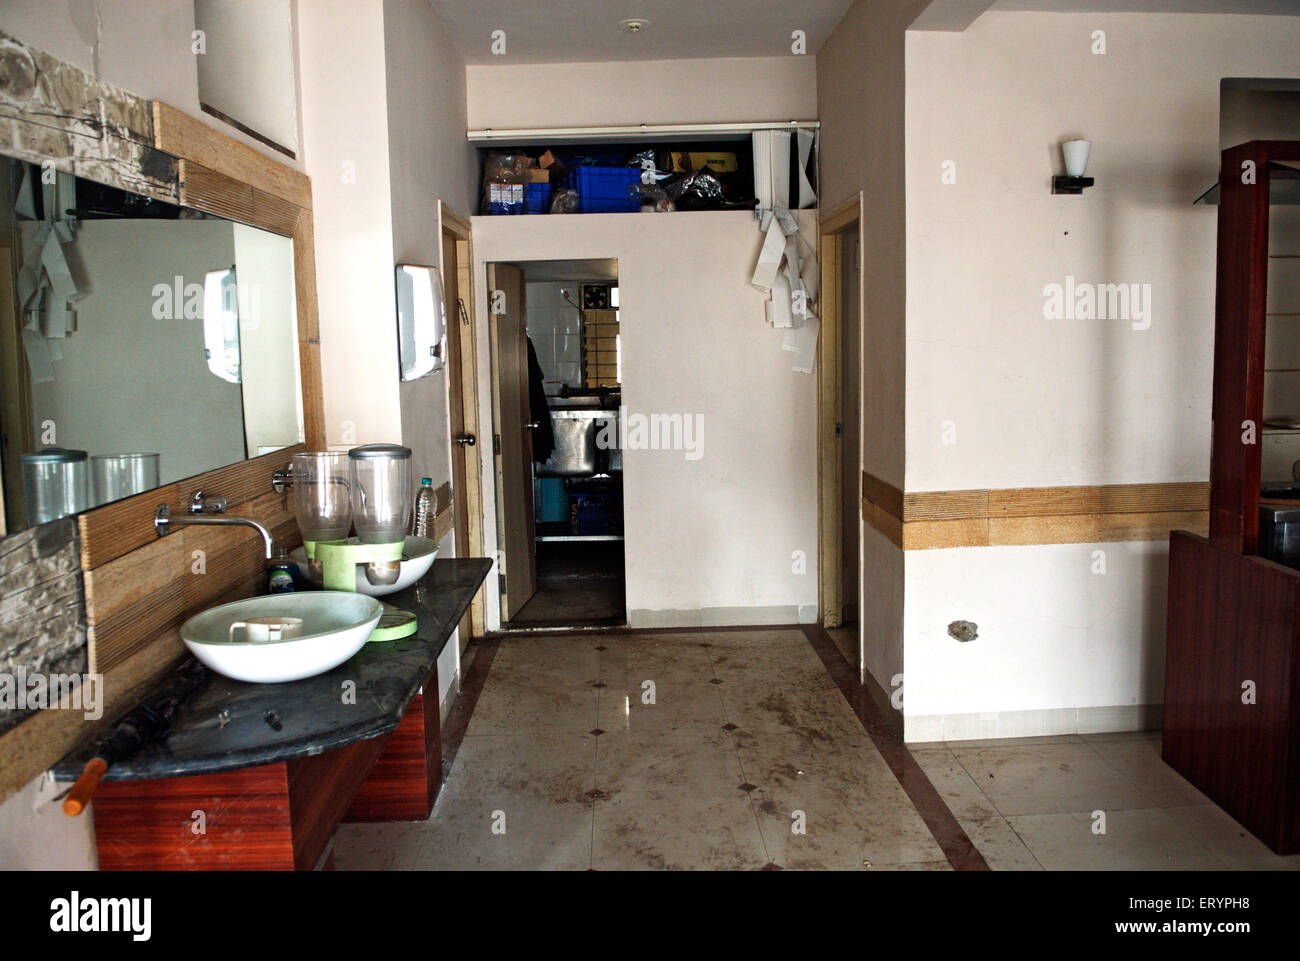 Blood stains room at nariman house jewish community centre by deccan mujahedeen terrorists attack in Bombay - Stock Image